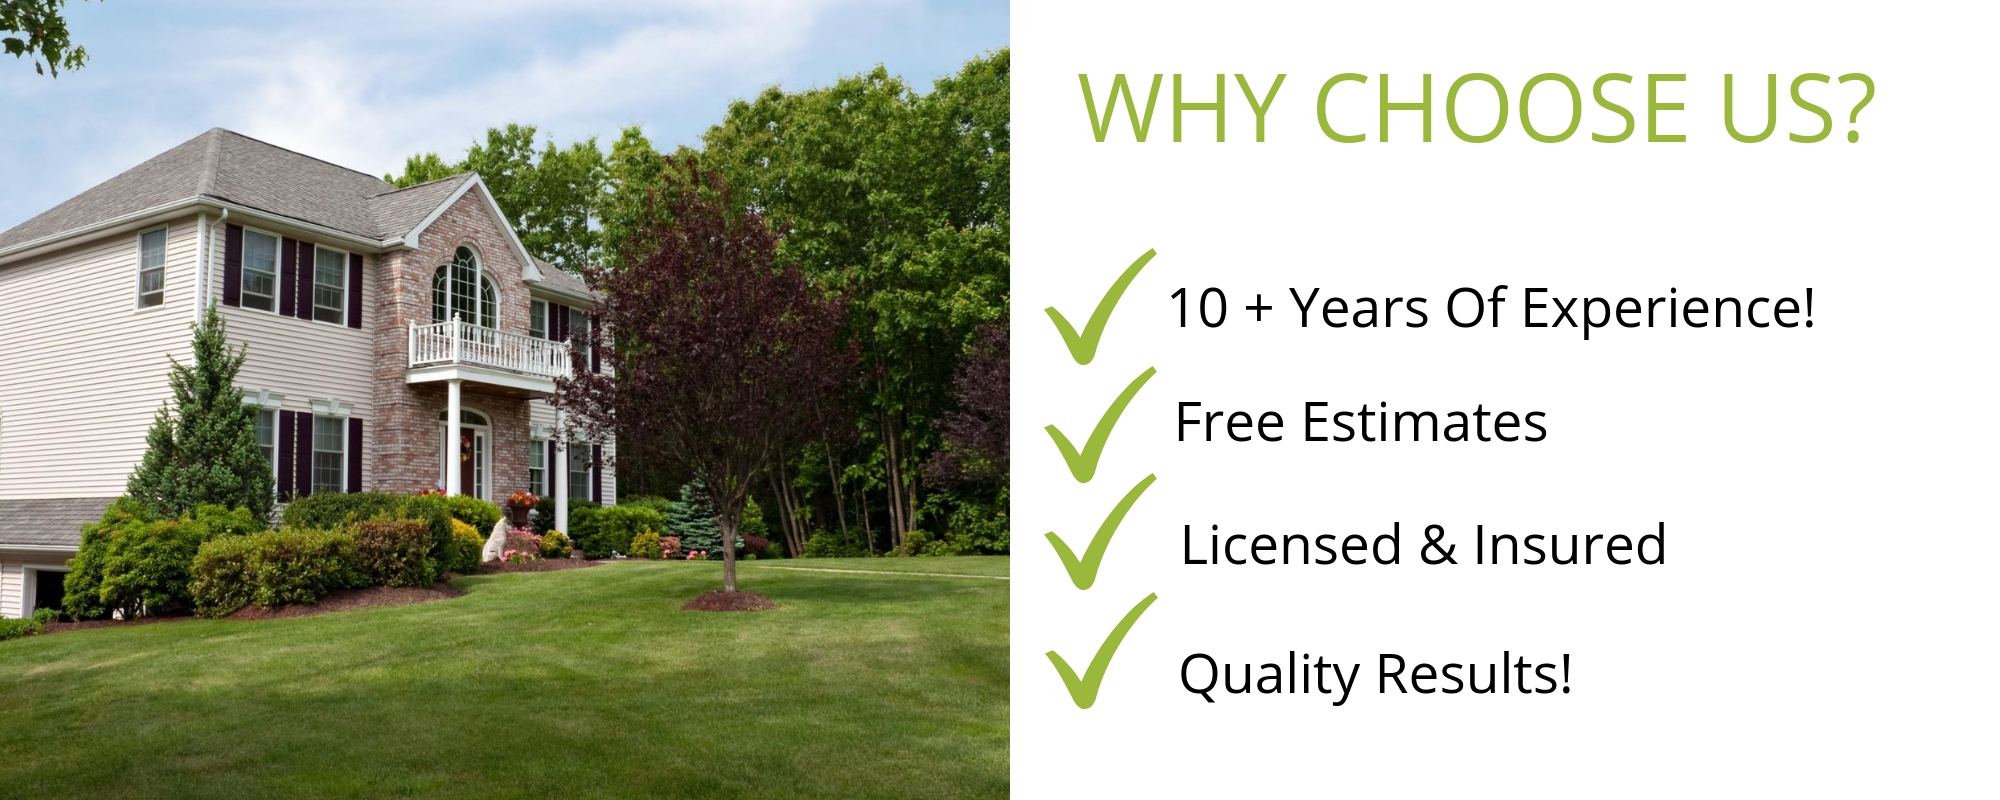 Reason to choose Wierzba for lawn care services!